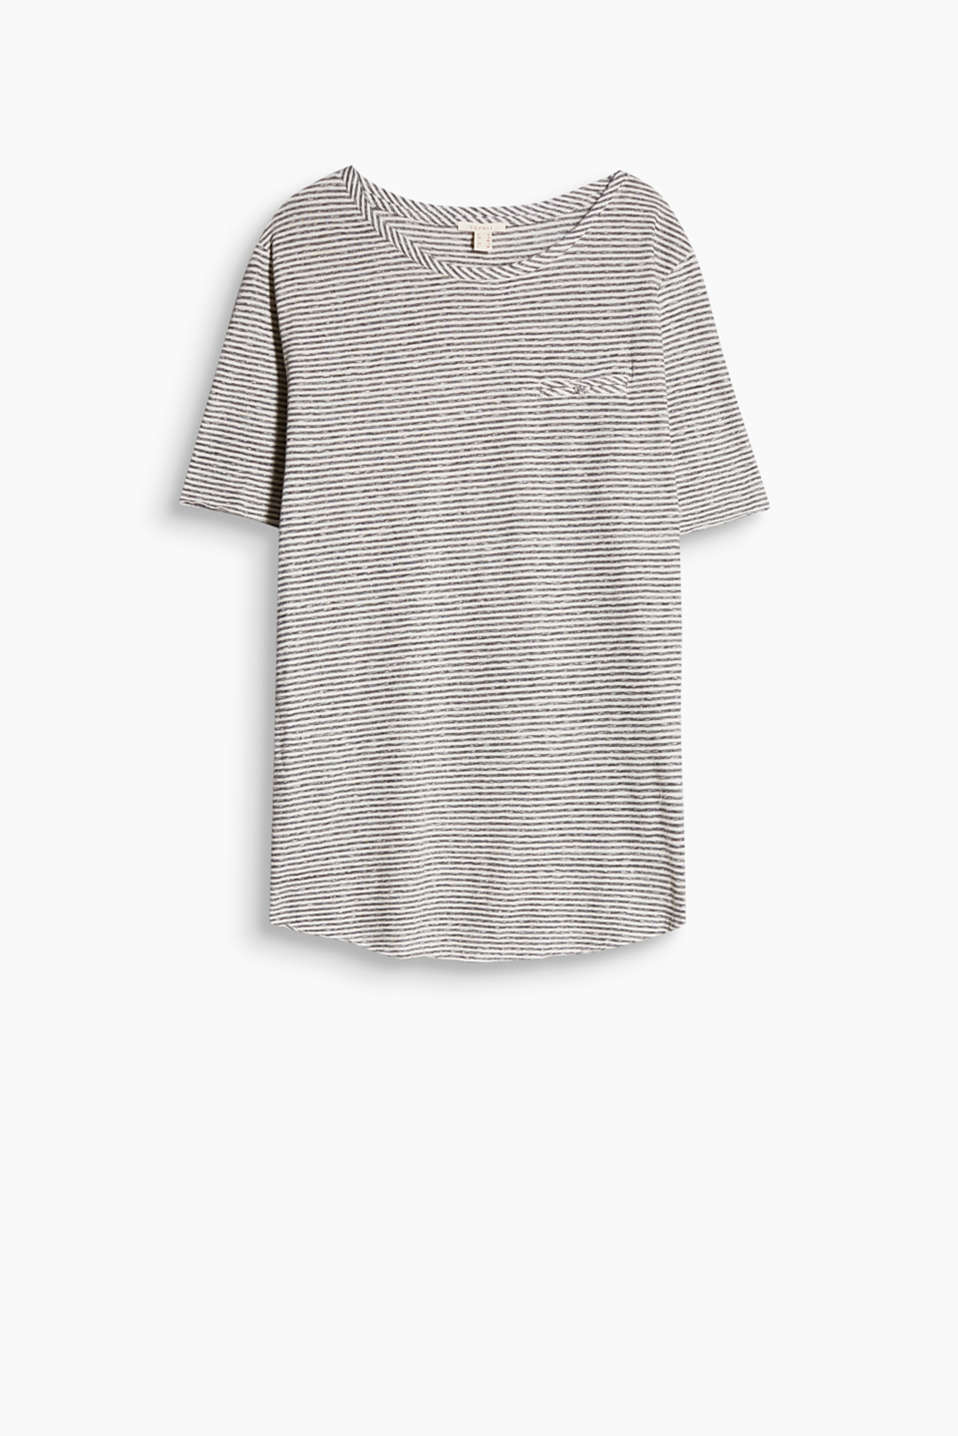 Soft striped T-shirt with unfinished edges in blended cotton with a decorative fake pocket